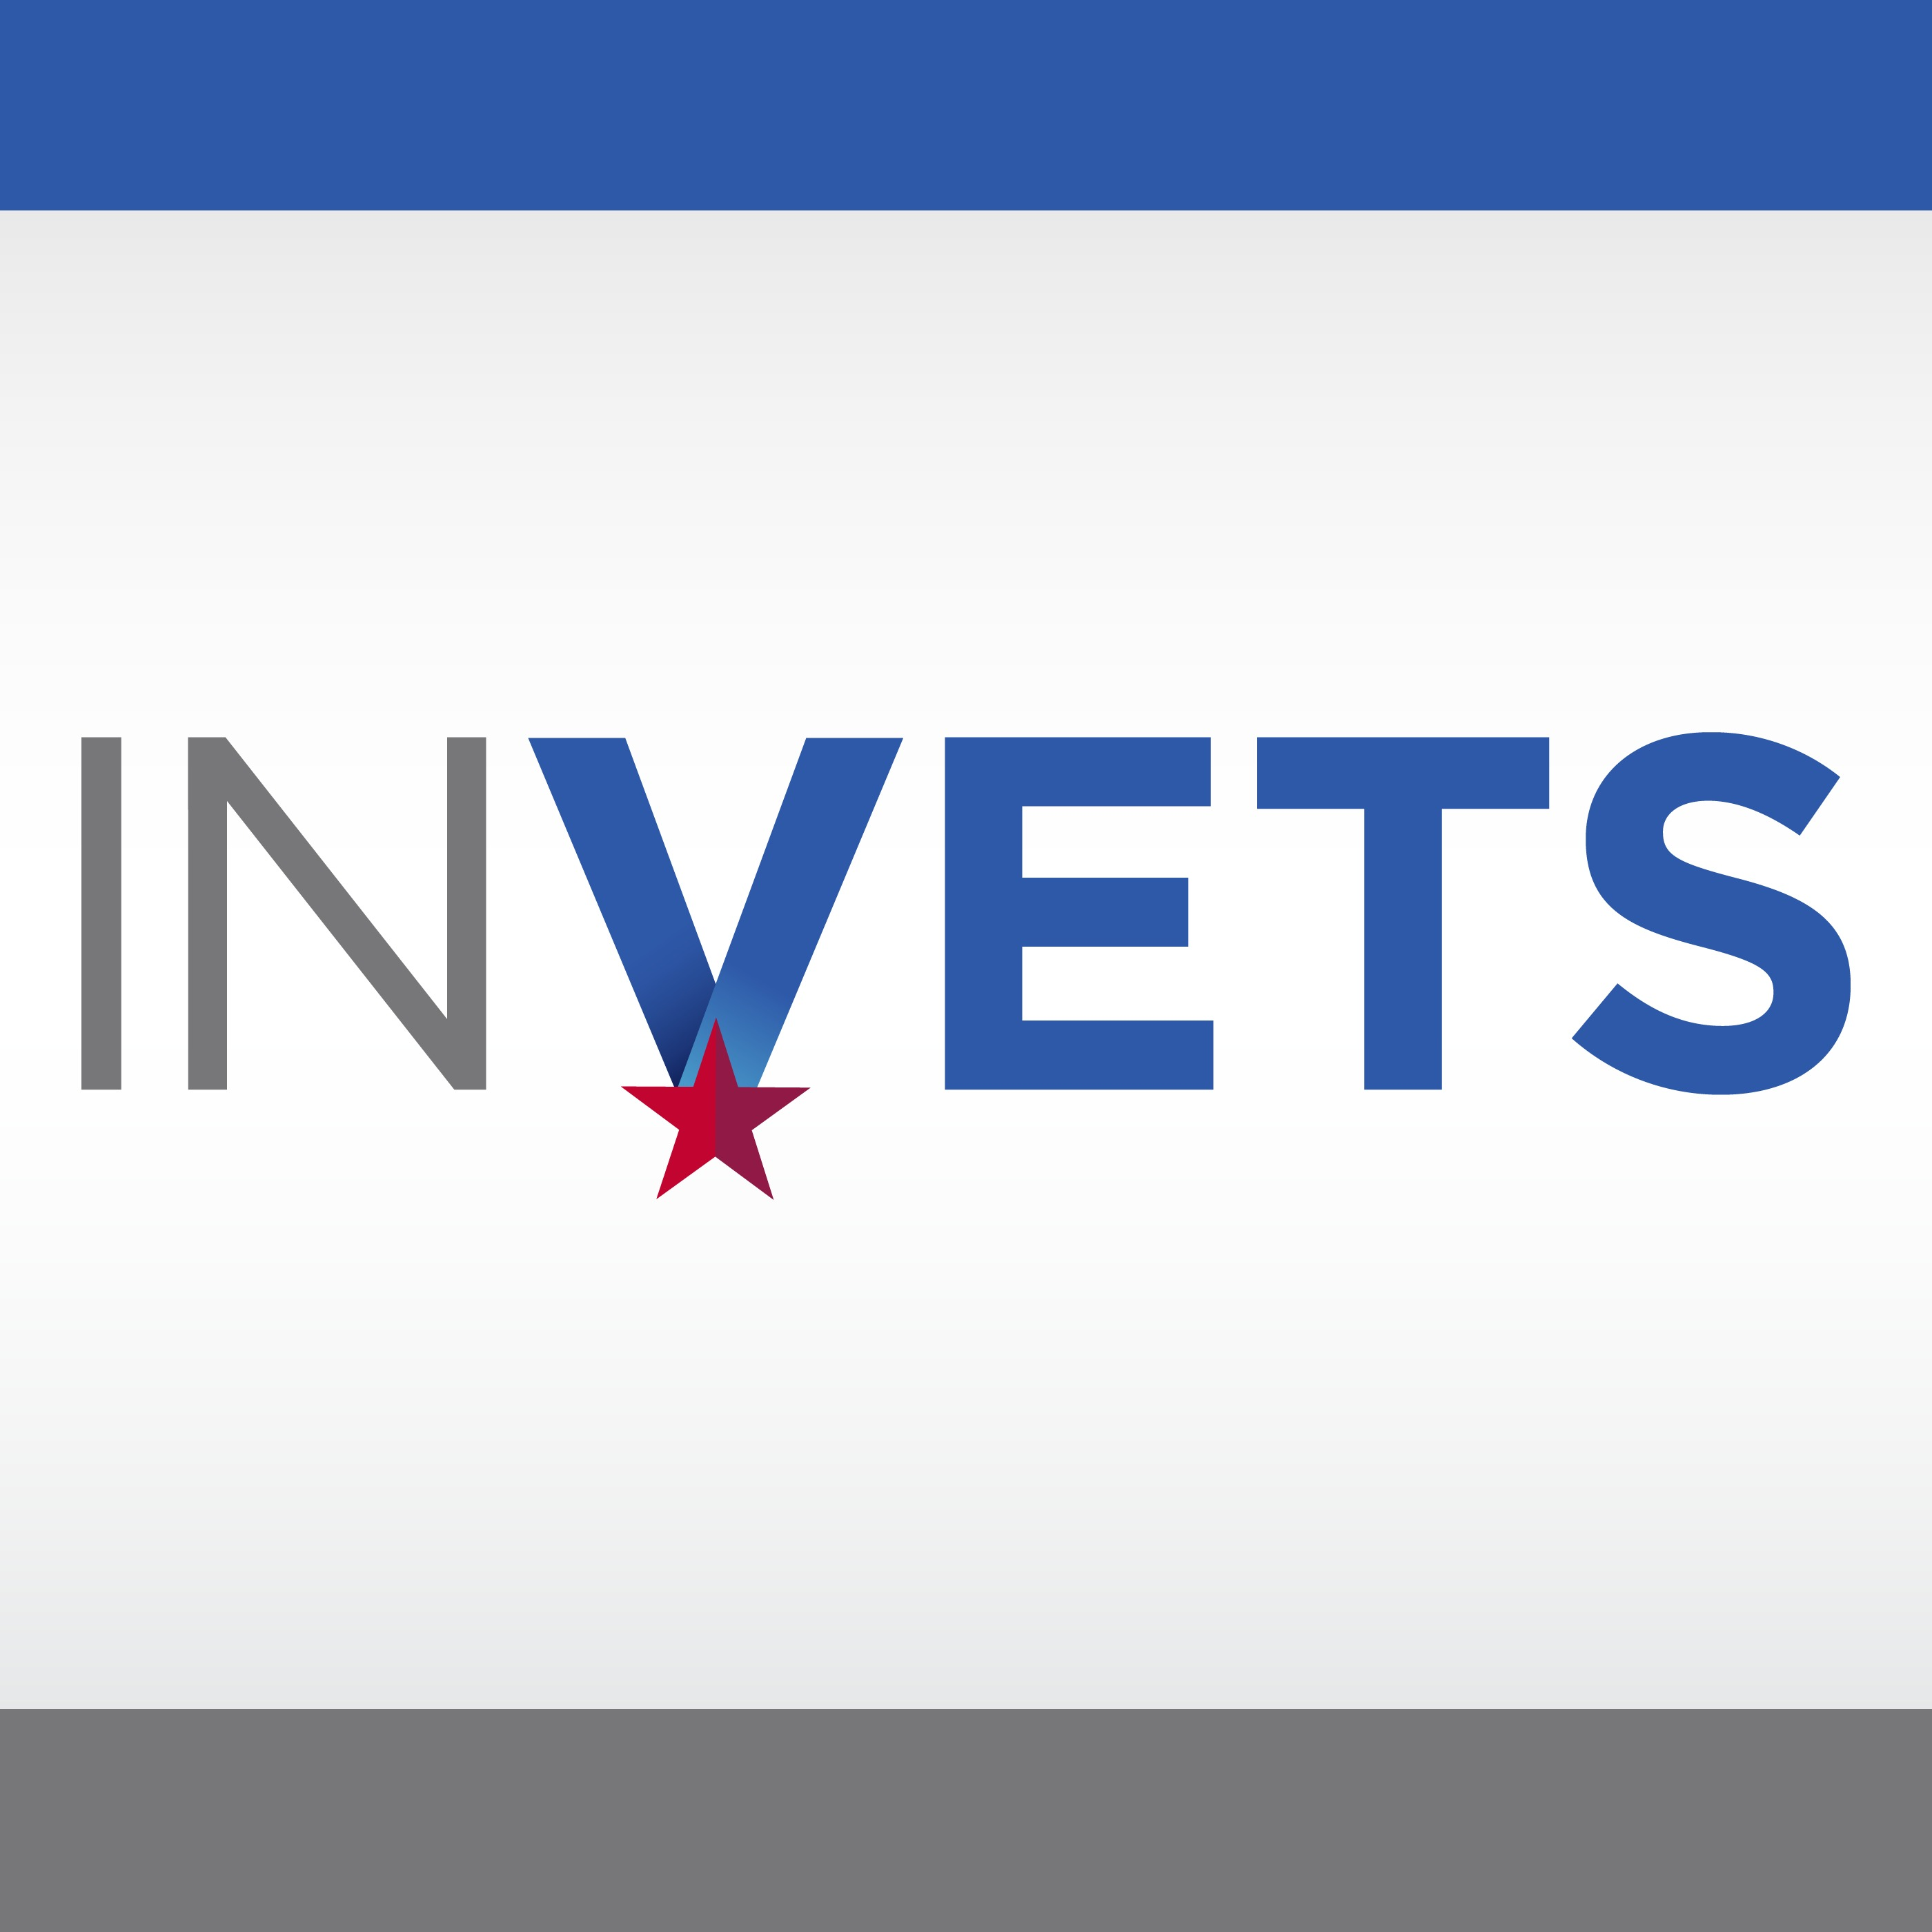 Episode 5: INVets: Connecting Veterans From Across the World with Indiana Careers